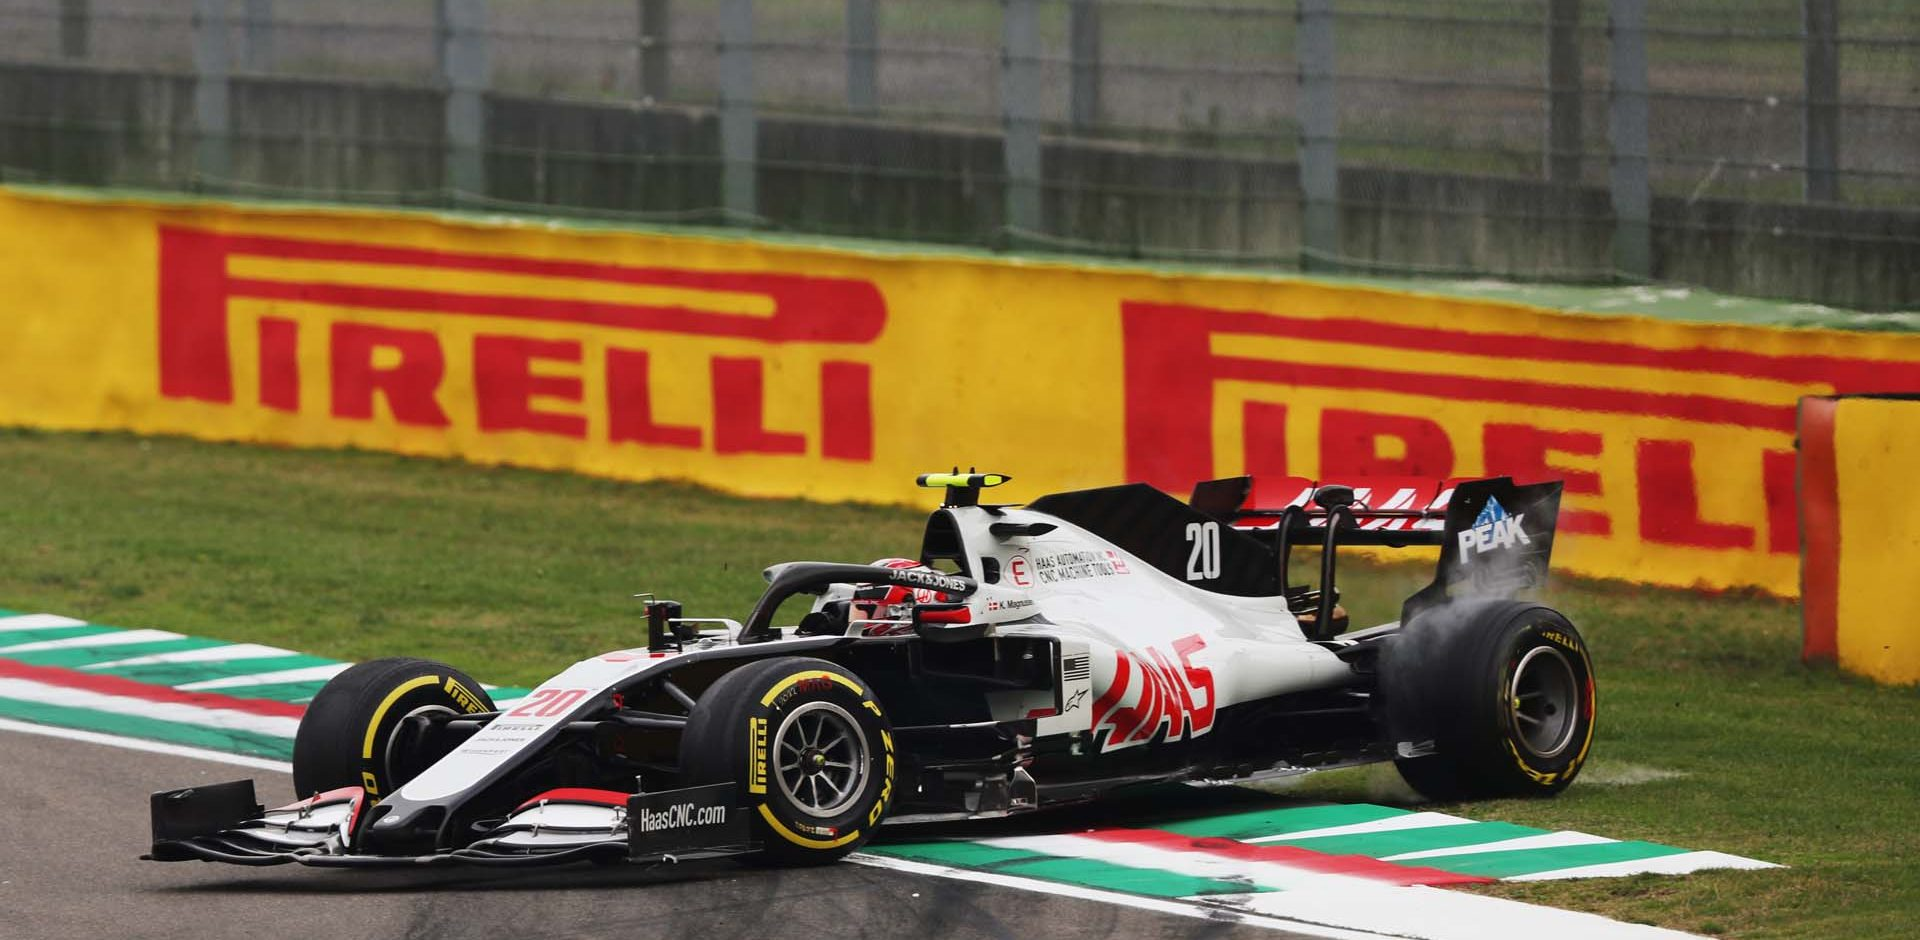 IMOLA, ITALY - NOVEMBER 01: Kevin Magnussen, Haas VF-20, spins on the way to the grid during the Emilia-Romagna GP at Imola on Sunday November 01, 2020, Italy. (Photo by Charles Coates / LAT Images)